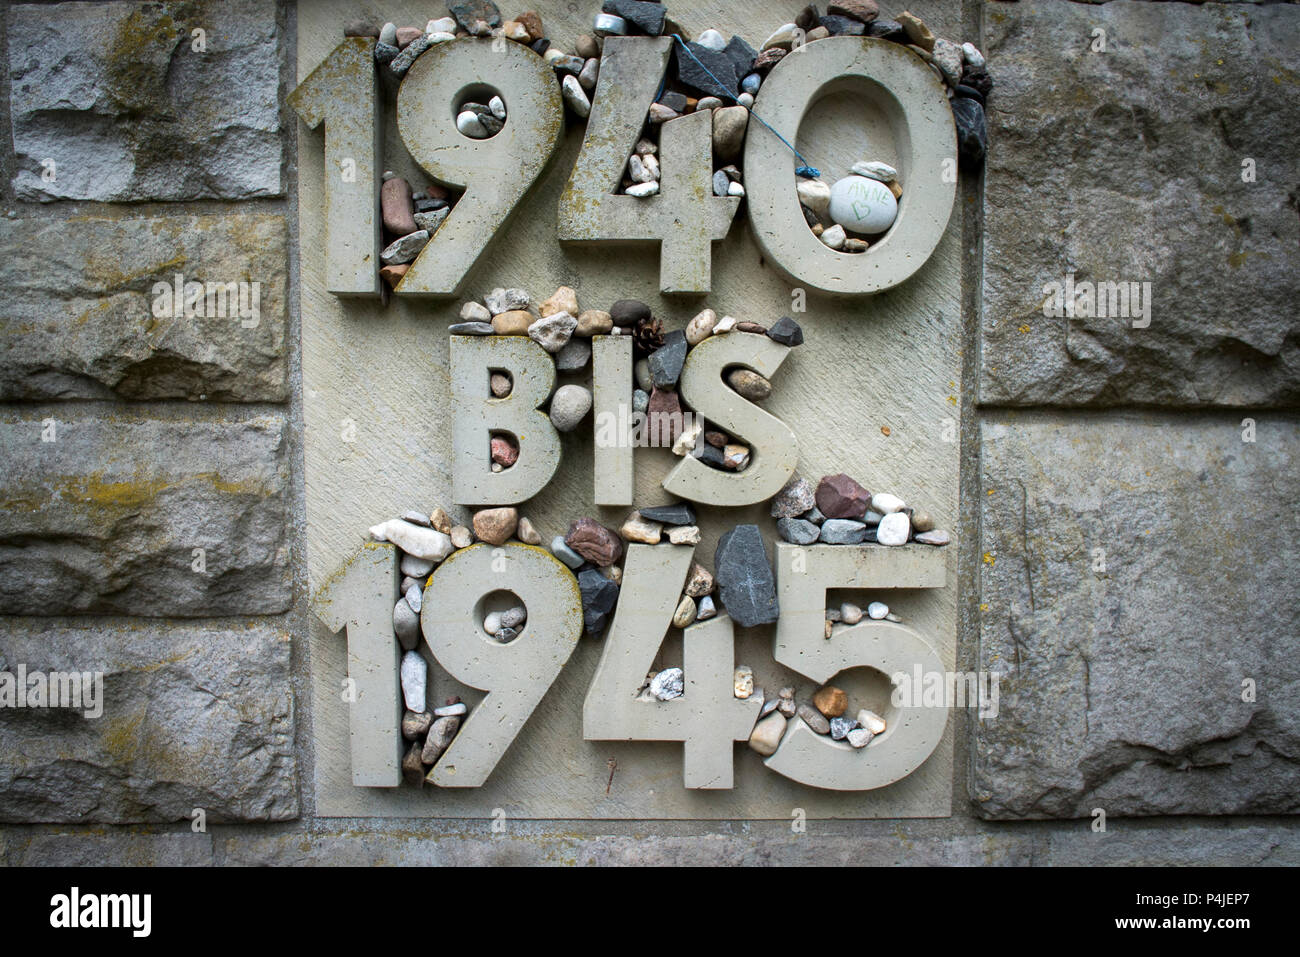 Memorial stone at the entrance to the historical camp area at Bergen-Belsen concentration camp grounds today. - Stock Image